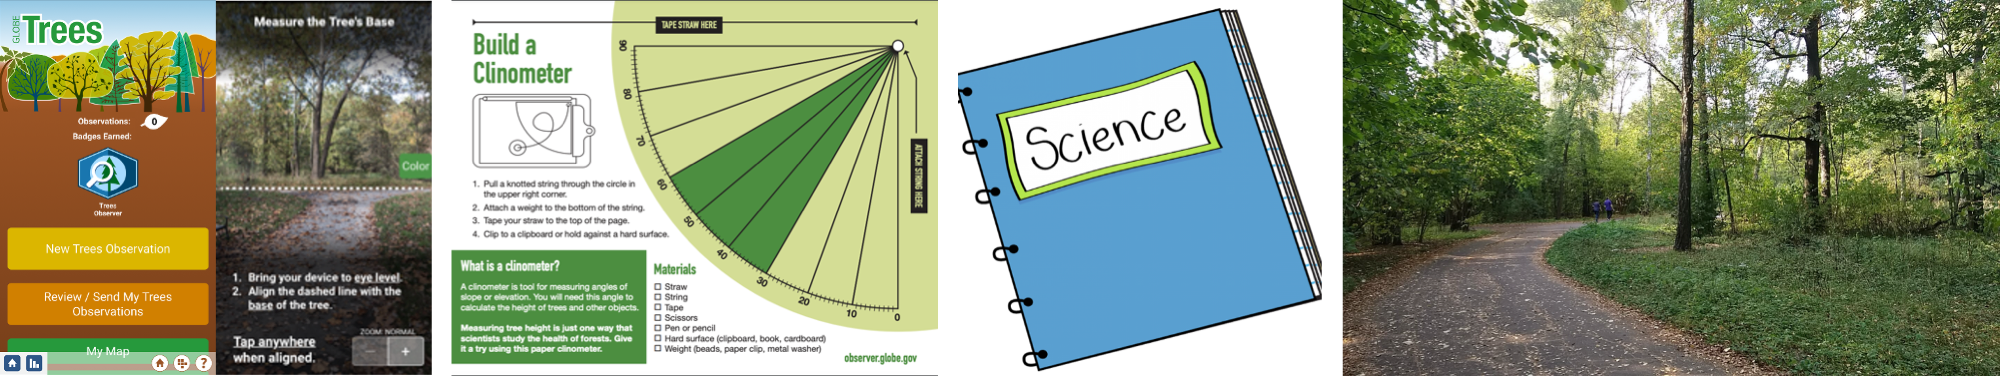 Composite of observe activities, from left: the GLOBE Observer app, the paper clinometer activity sheet, the cover of a science journal, and an image of a landscape with trees.